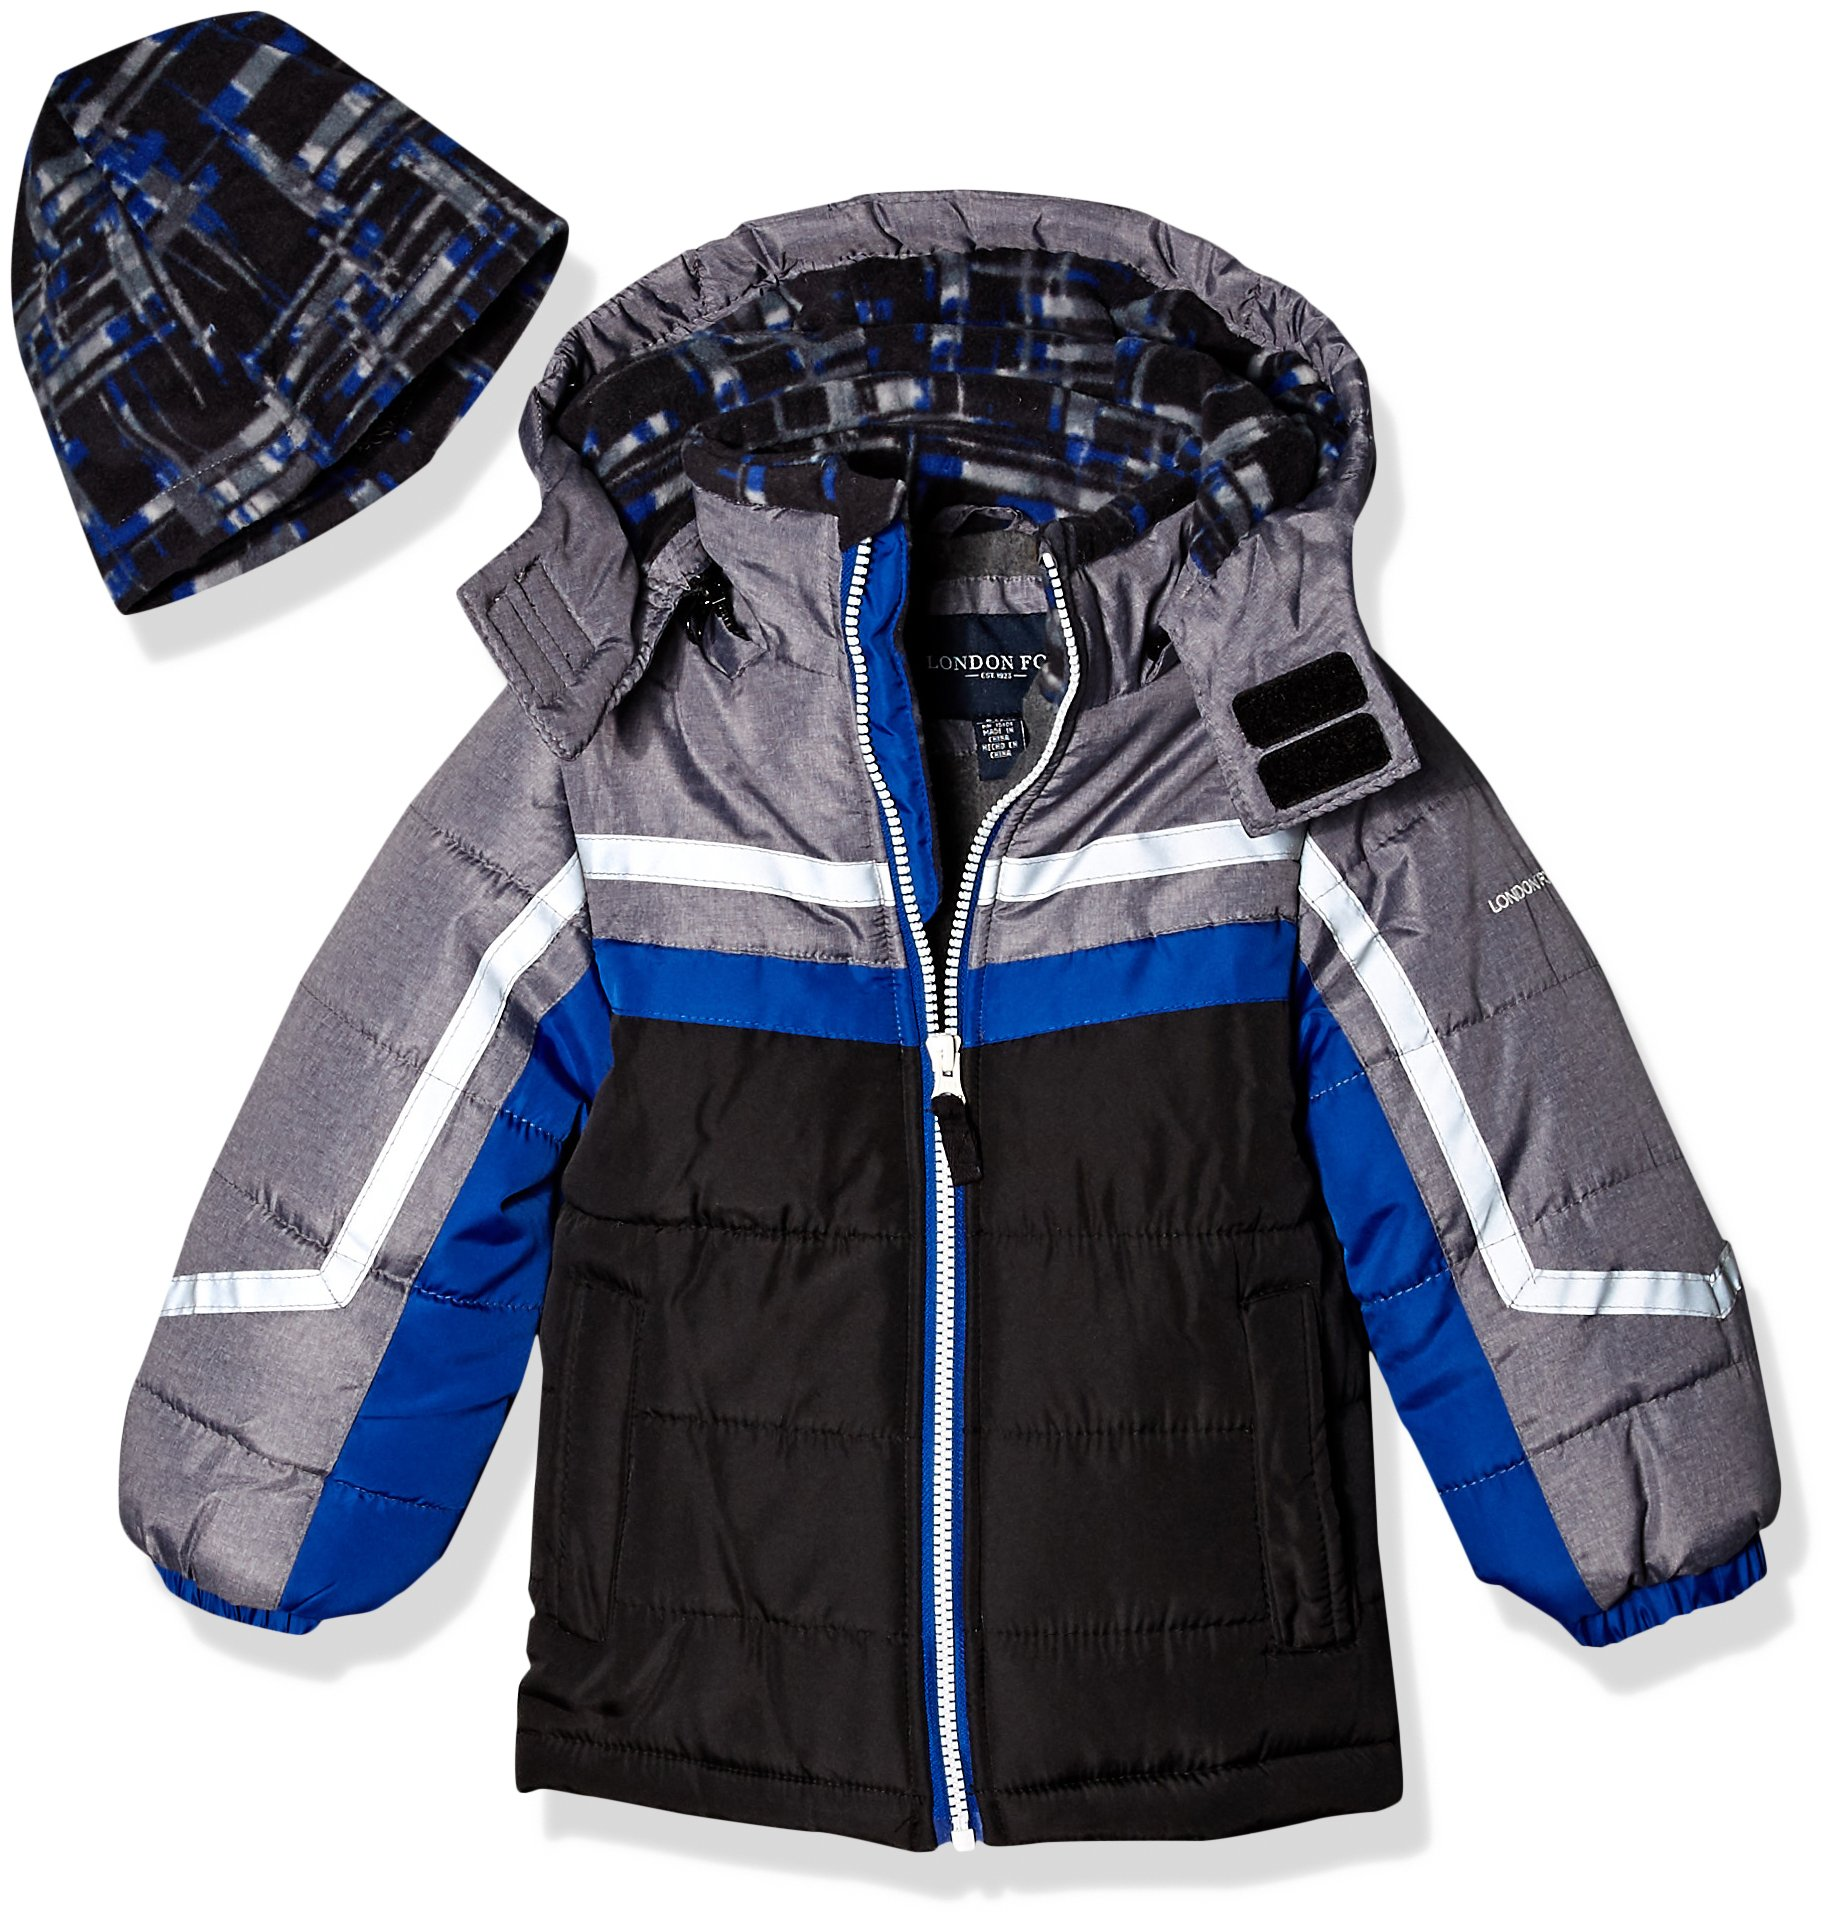 London Fog Toddler Boys' Active Heavyweight Jacket with Ski Cap, Super Blue, 2T